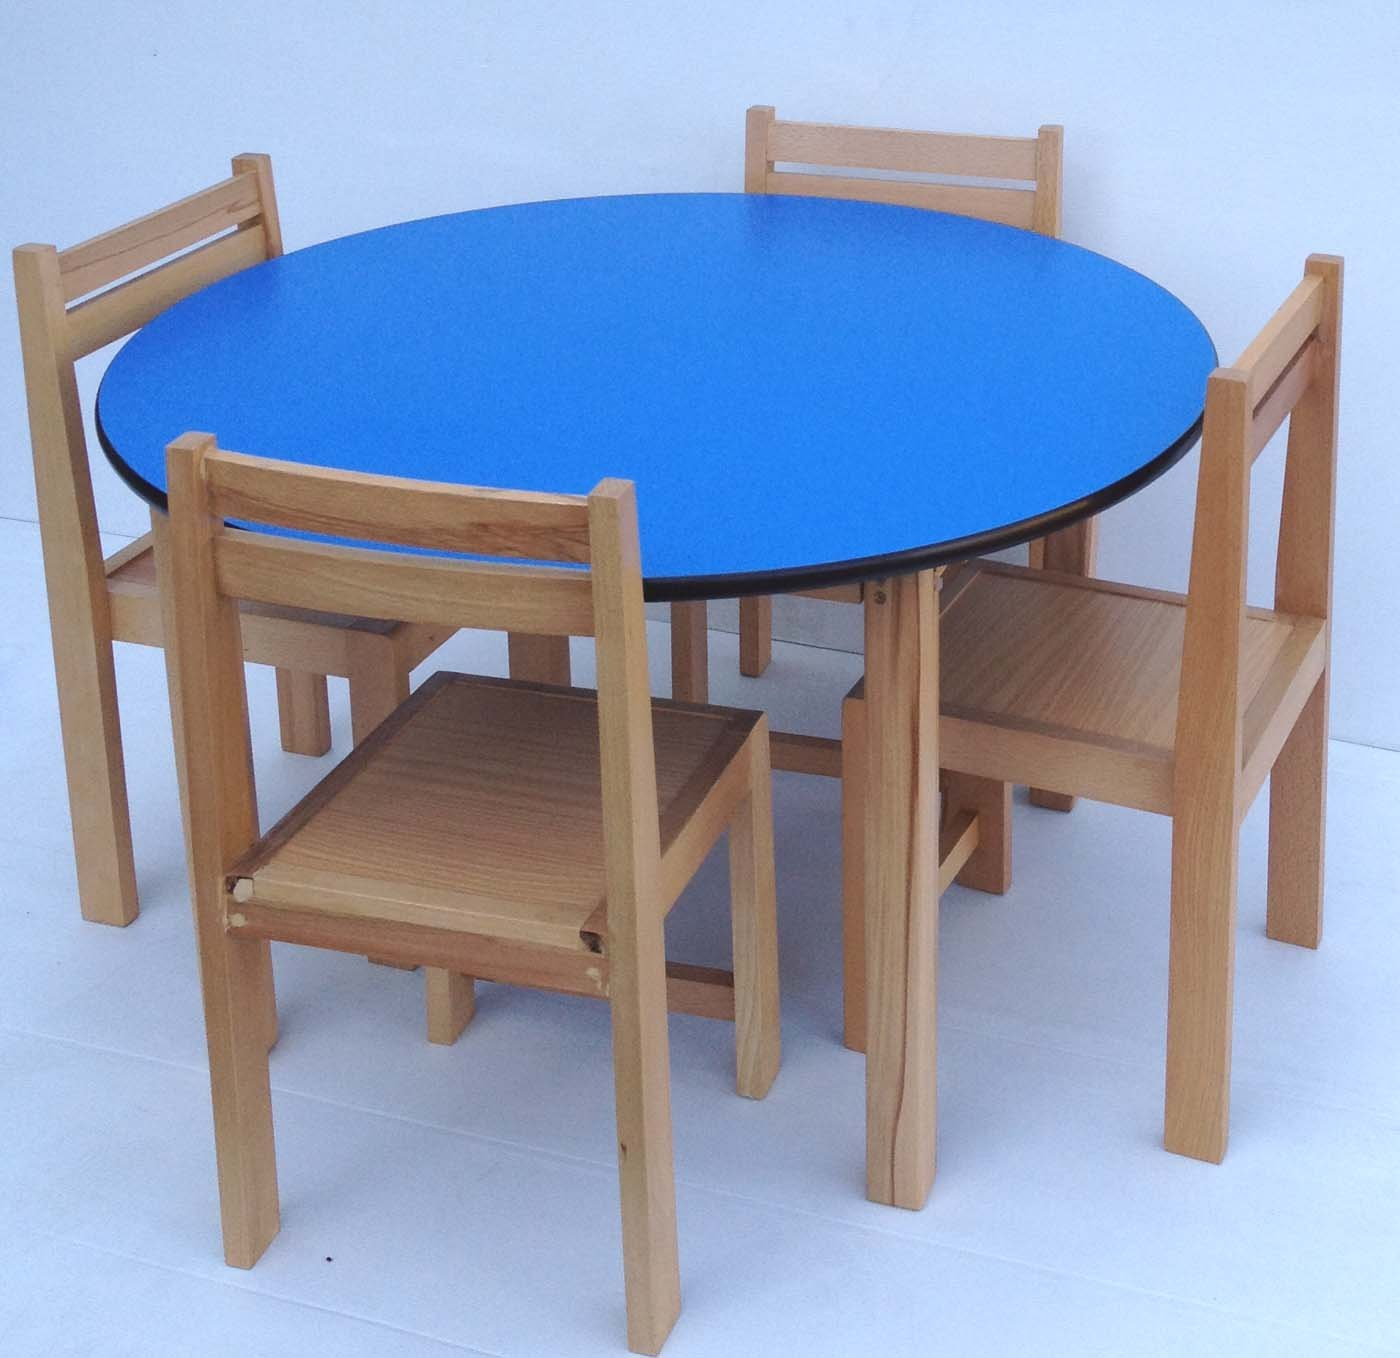 High Quality Kids Table/Chairs Set   Beech Wood Round Table And Wooden Stacking Chairs  (White): Amazon.co.uk: Kitchen U0026 Home